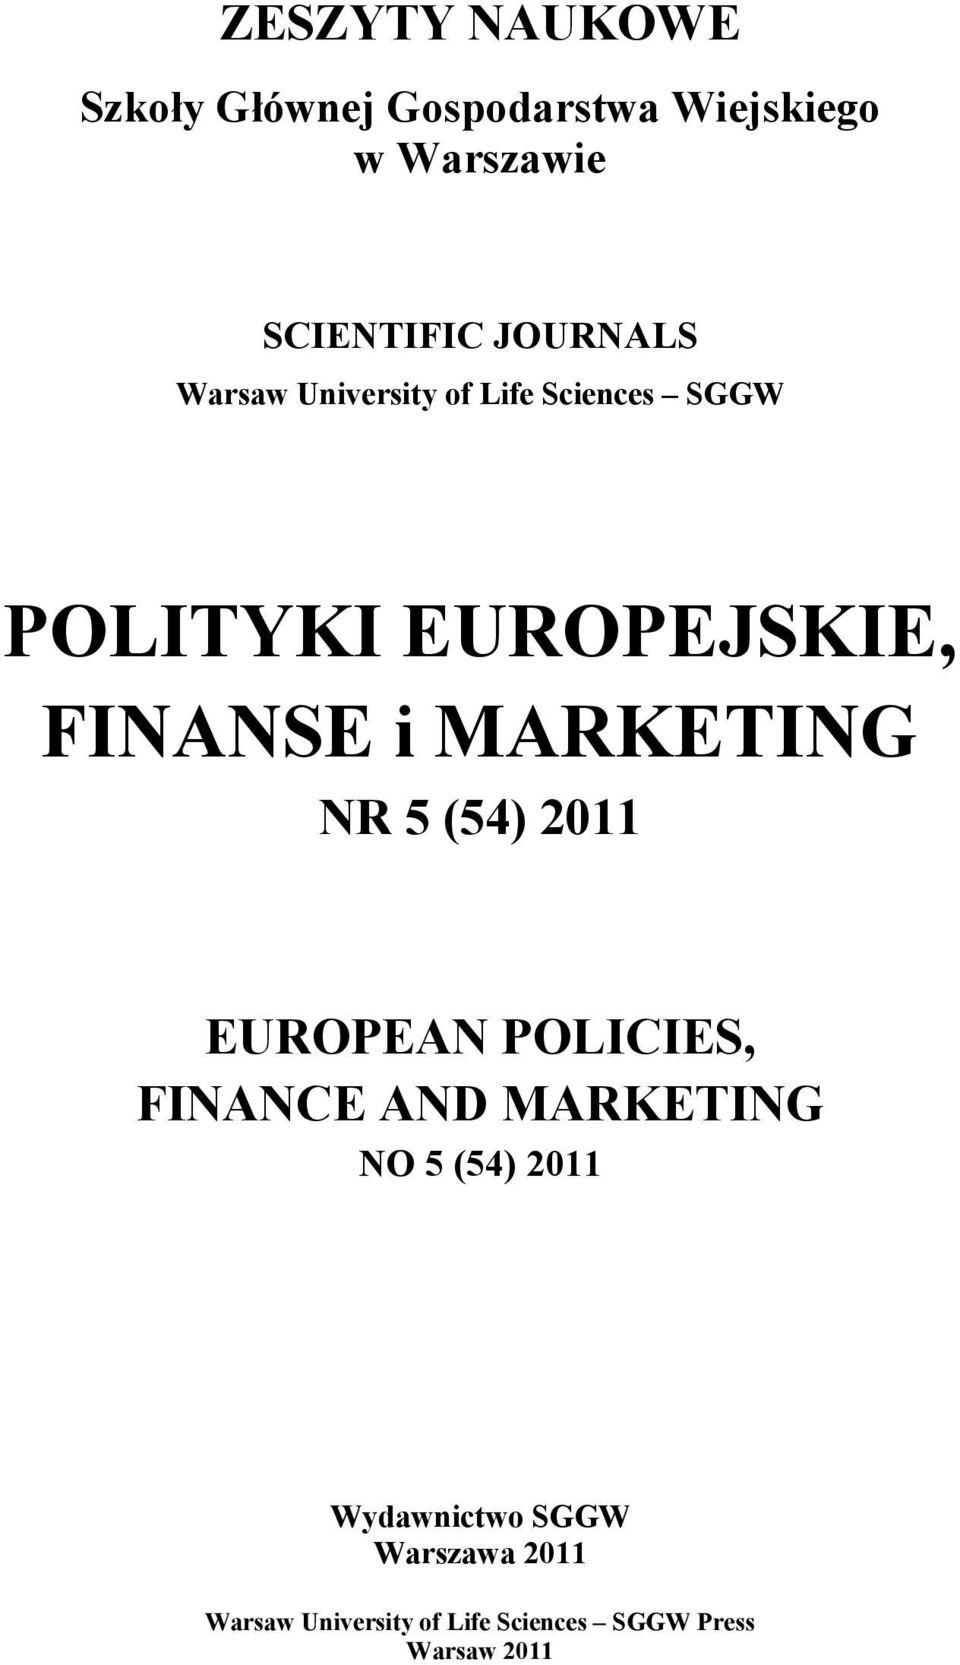 MARKETING NR 5 (54) 2011 EUROPEAN POLICIES, FINANCE AND MARKETING NO 5 (54) 2011